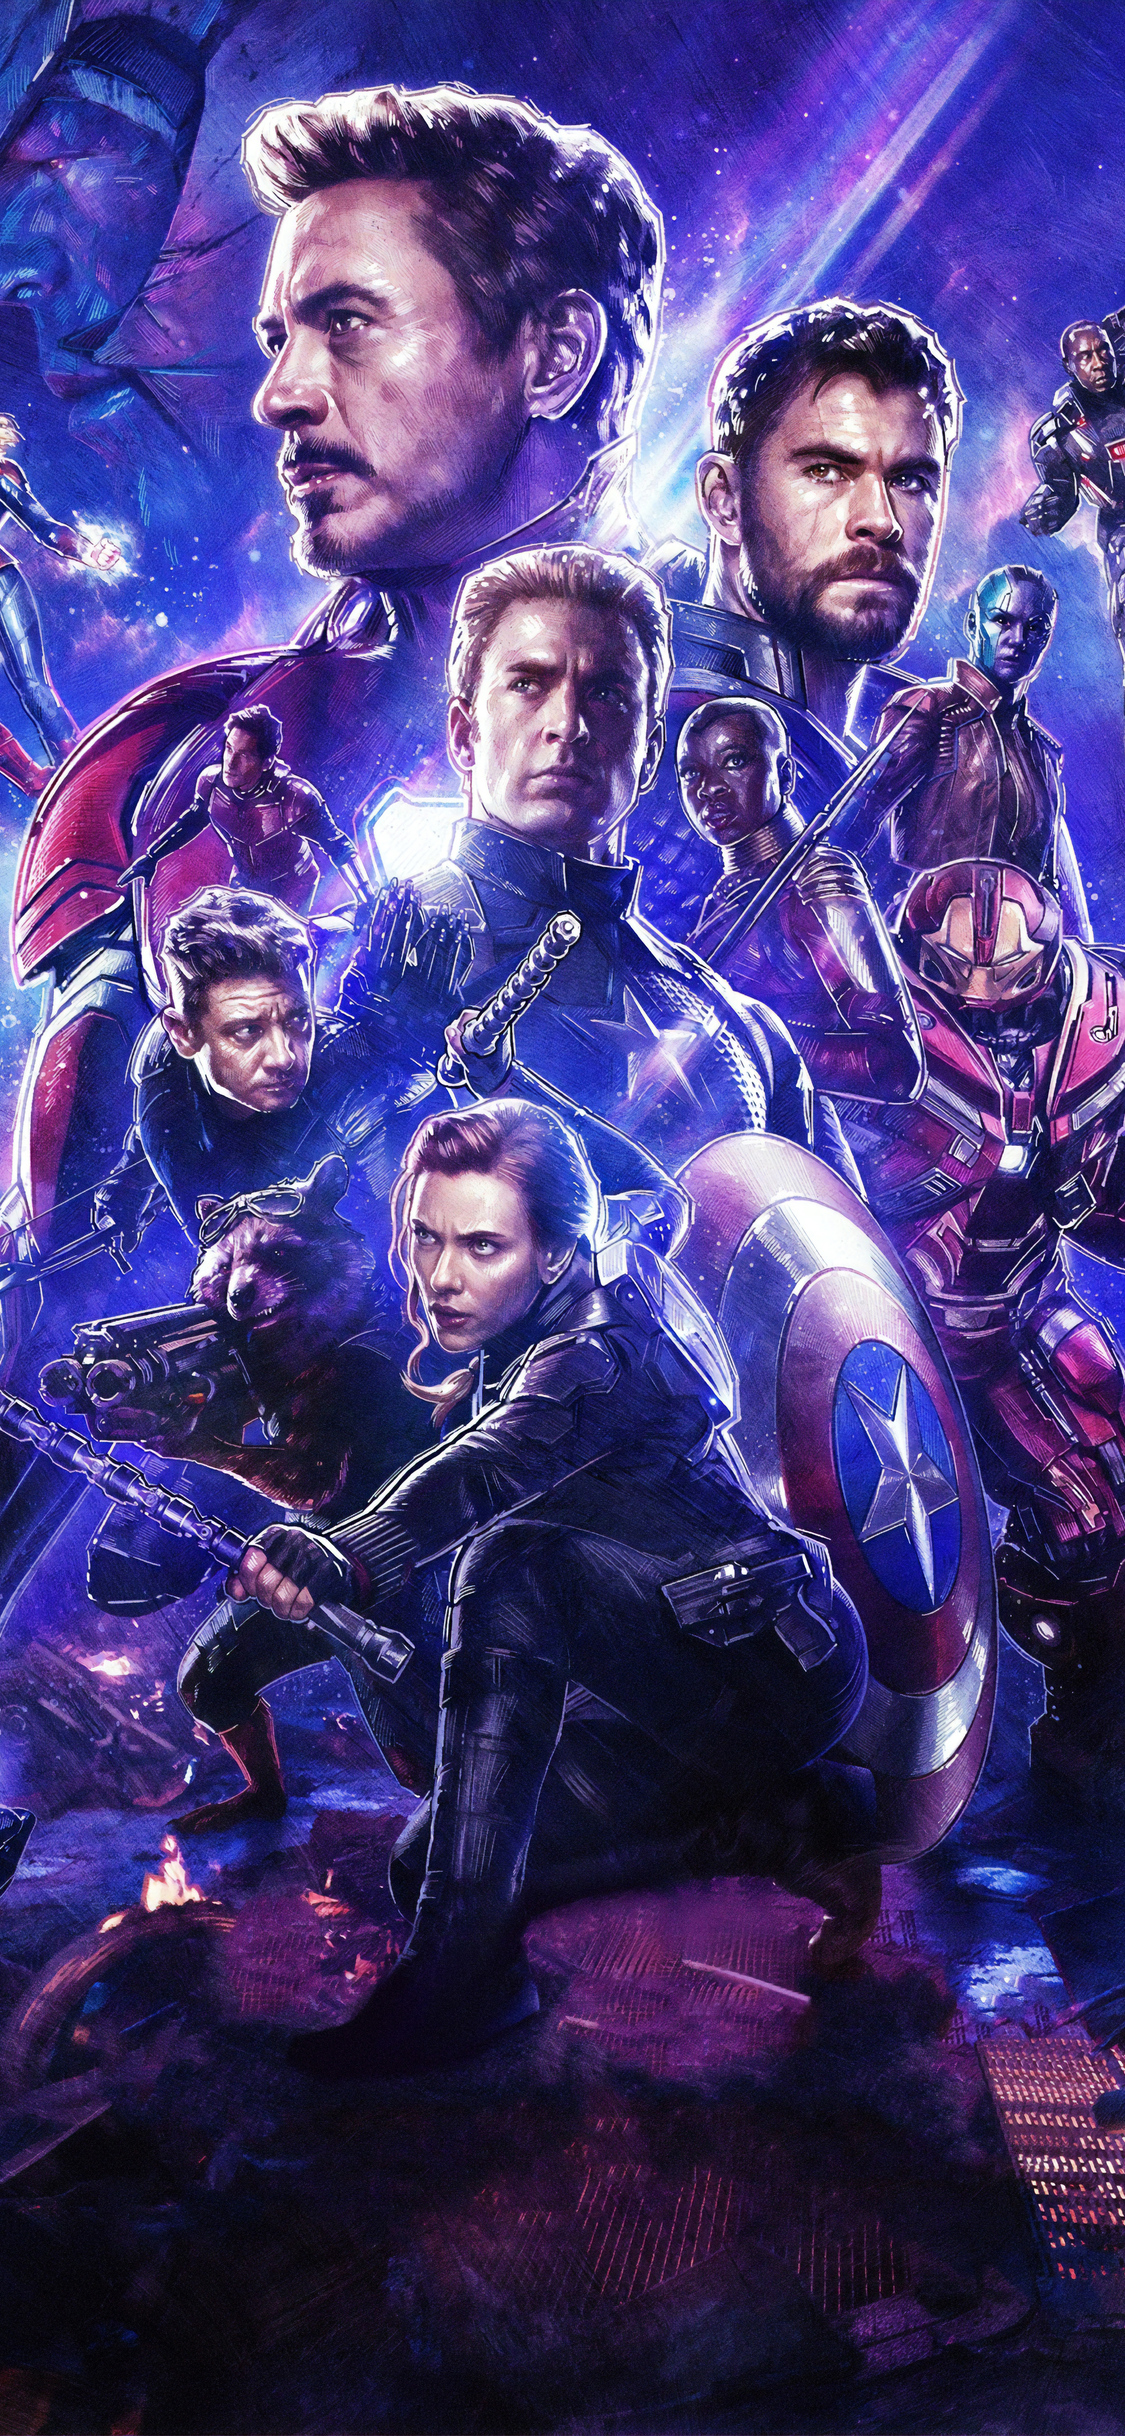 1125x2436 Avengers Endgame 4k Iphone Xsiphone 10iphone X Hd 4k